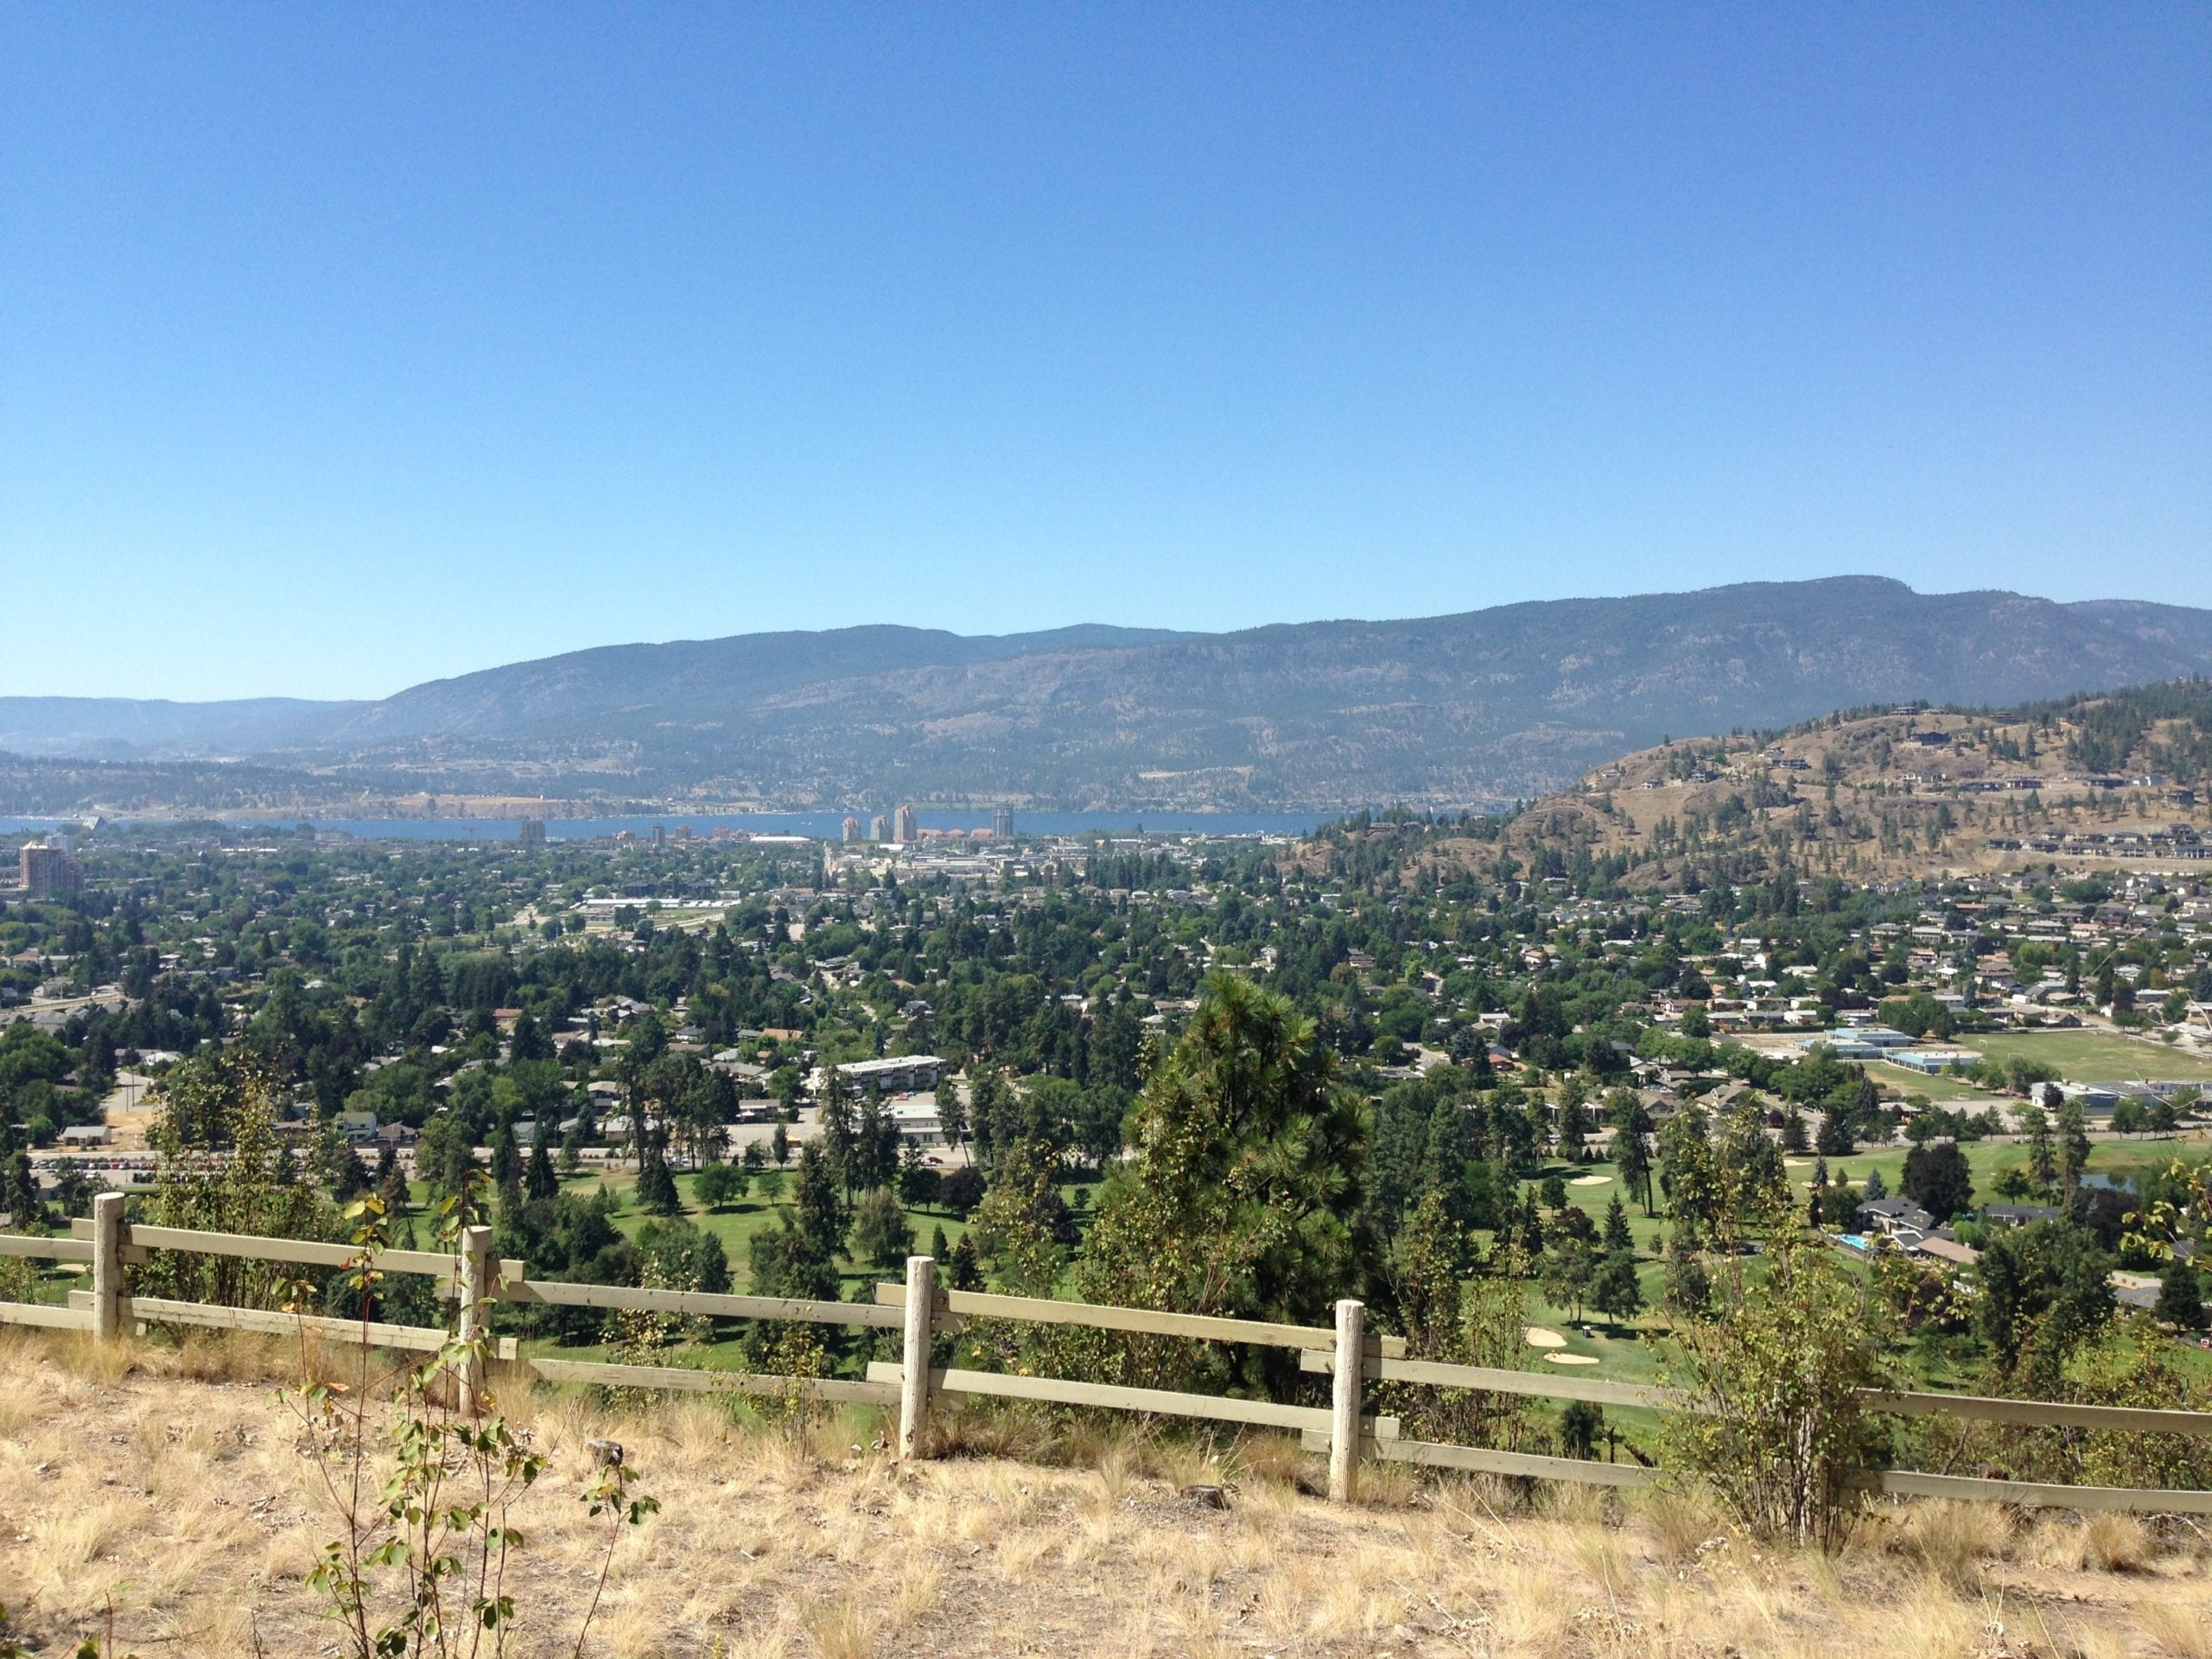 Valley view of residential Kelowna on a clear sunny day, with mountains and Okanagan lake in background